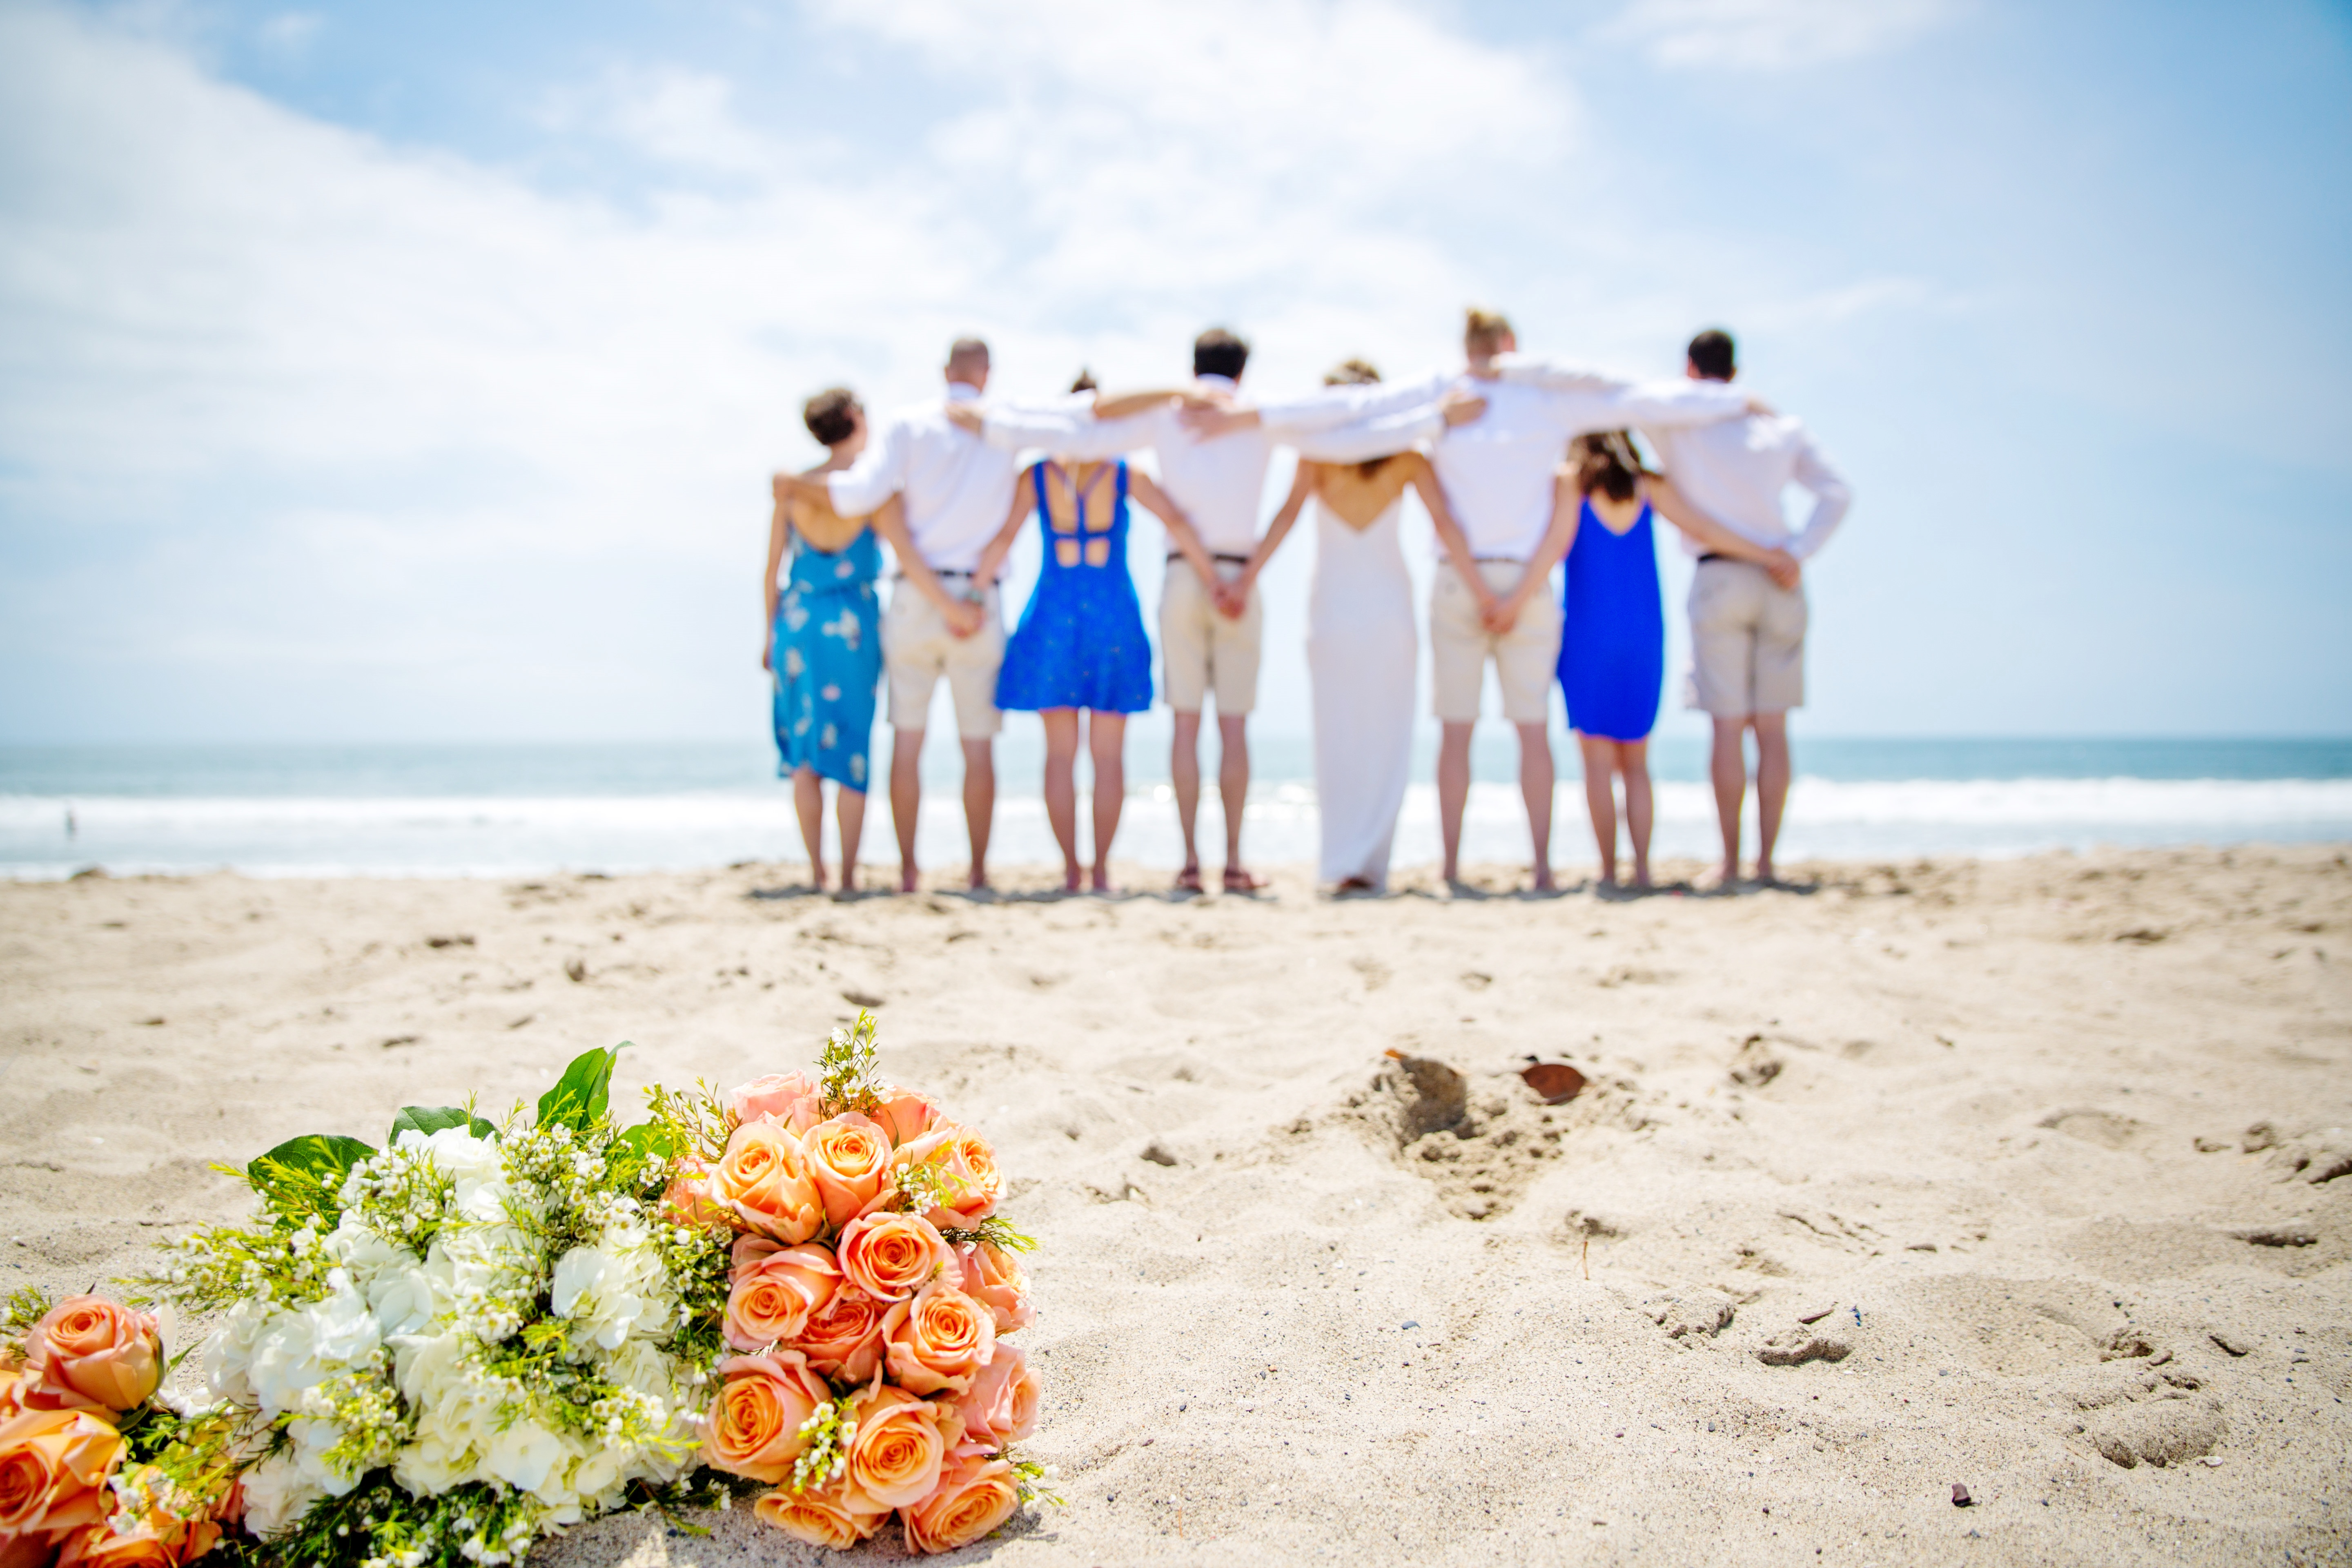 Los Angeles Beach Weddings Offers Amazing Elopement And Full All Inclusive Wedding Packages So You Can Say I